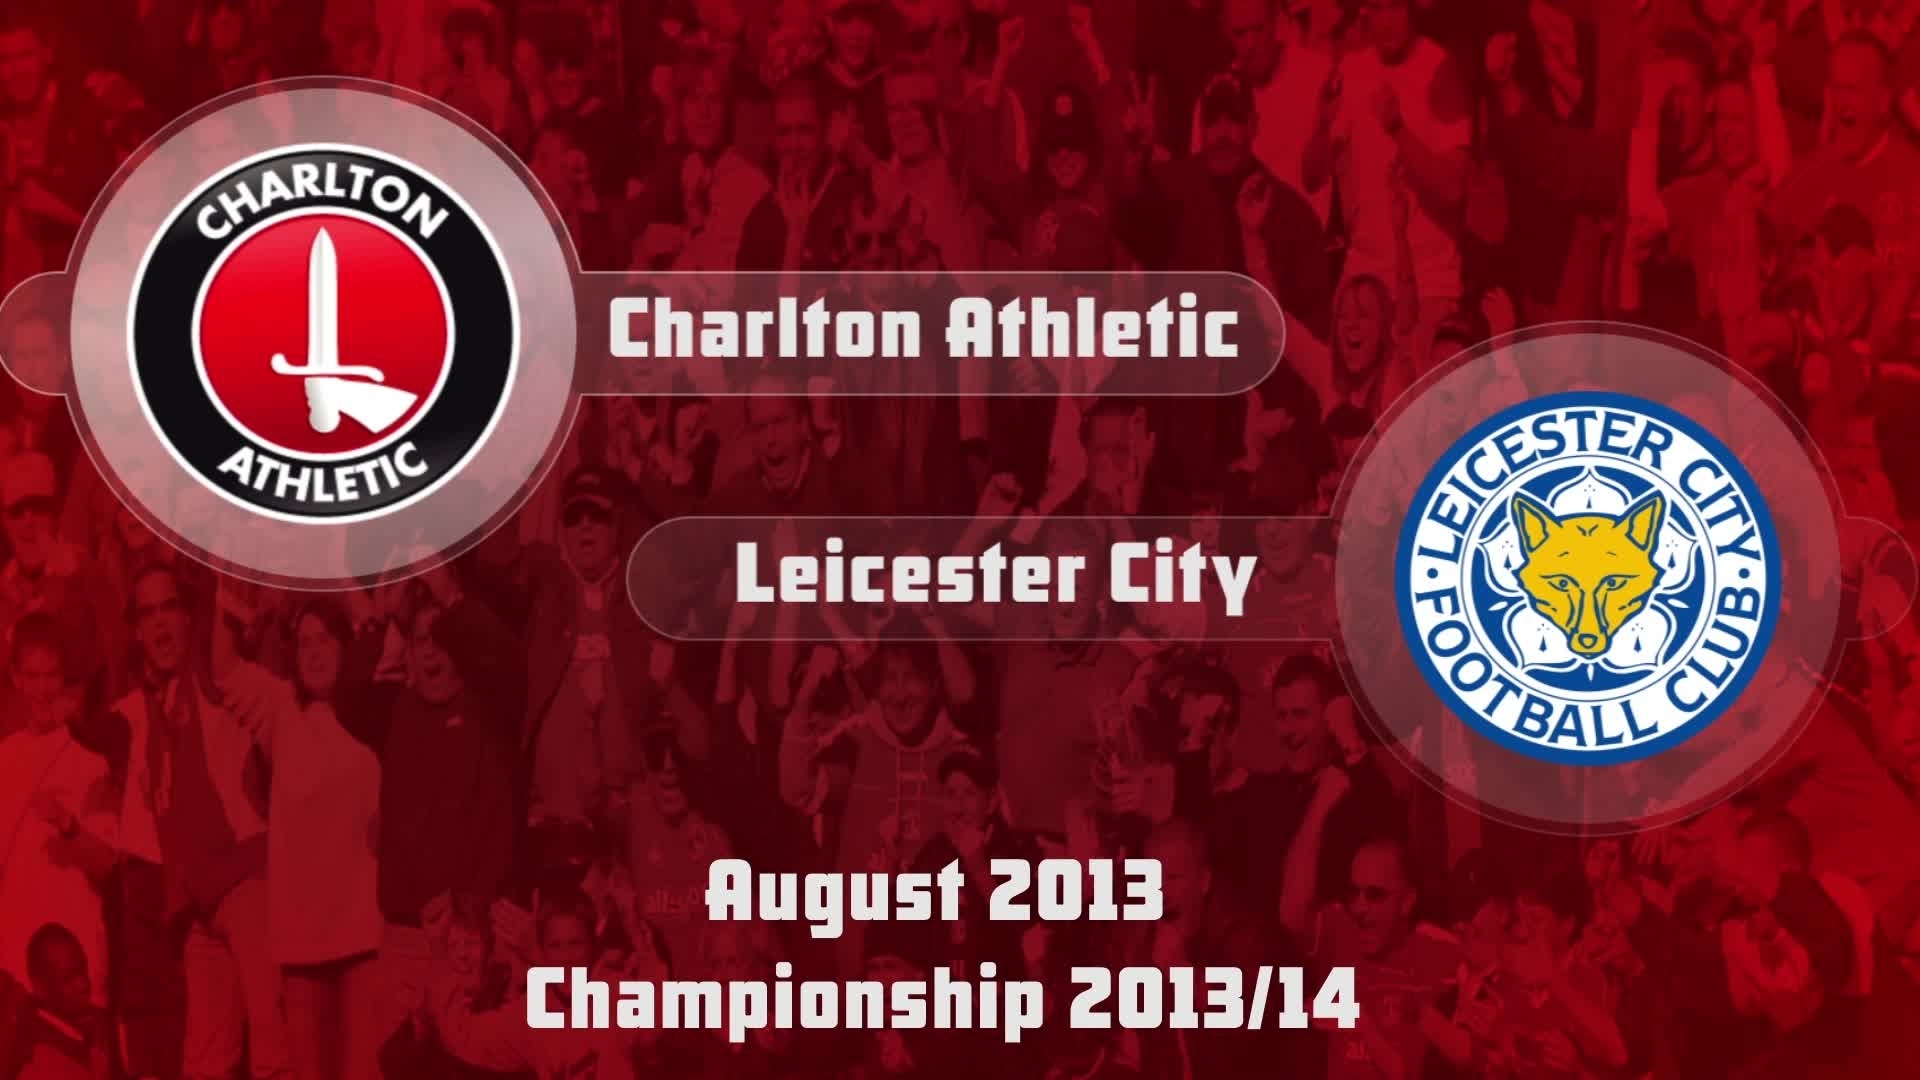 06 HIGHLIGHTS | Charlton 2 Leicester City 1 (Aug 2013)